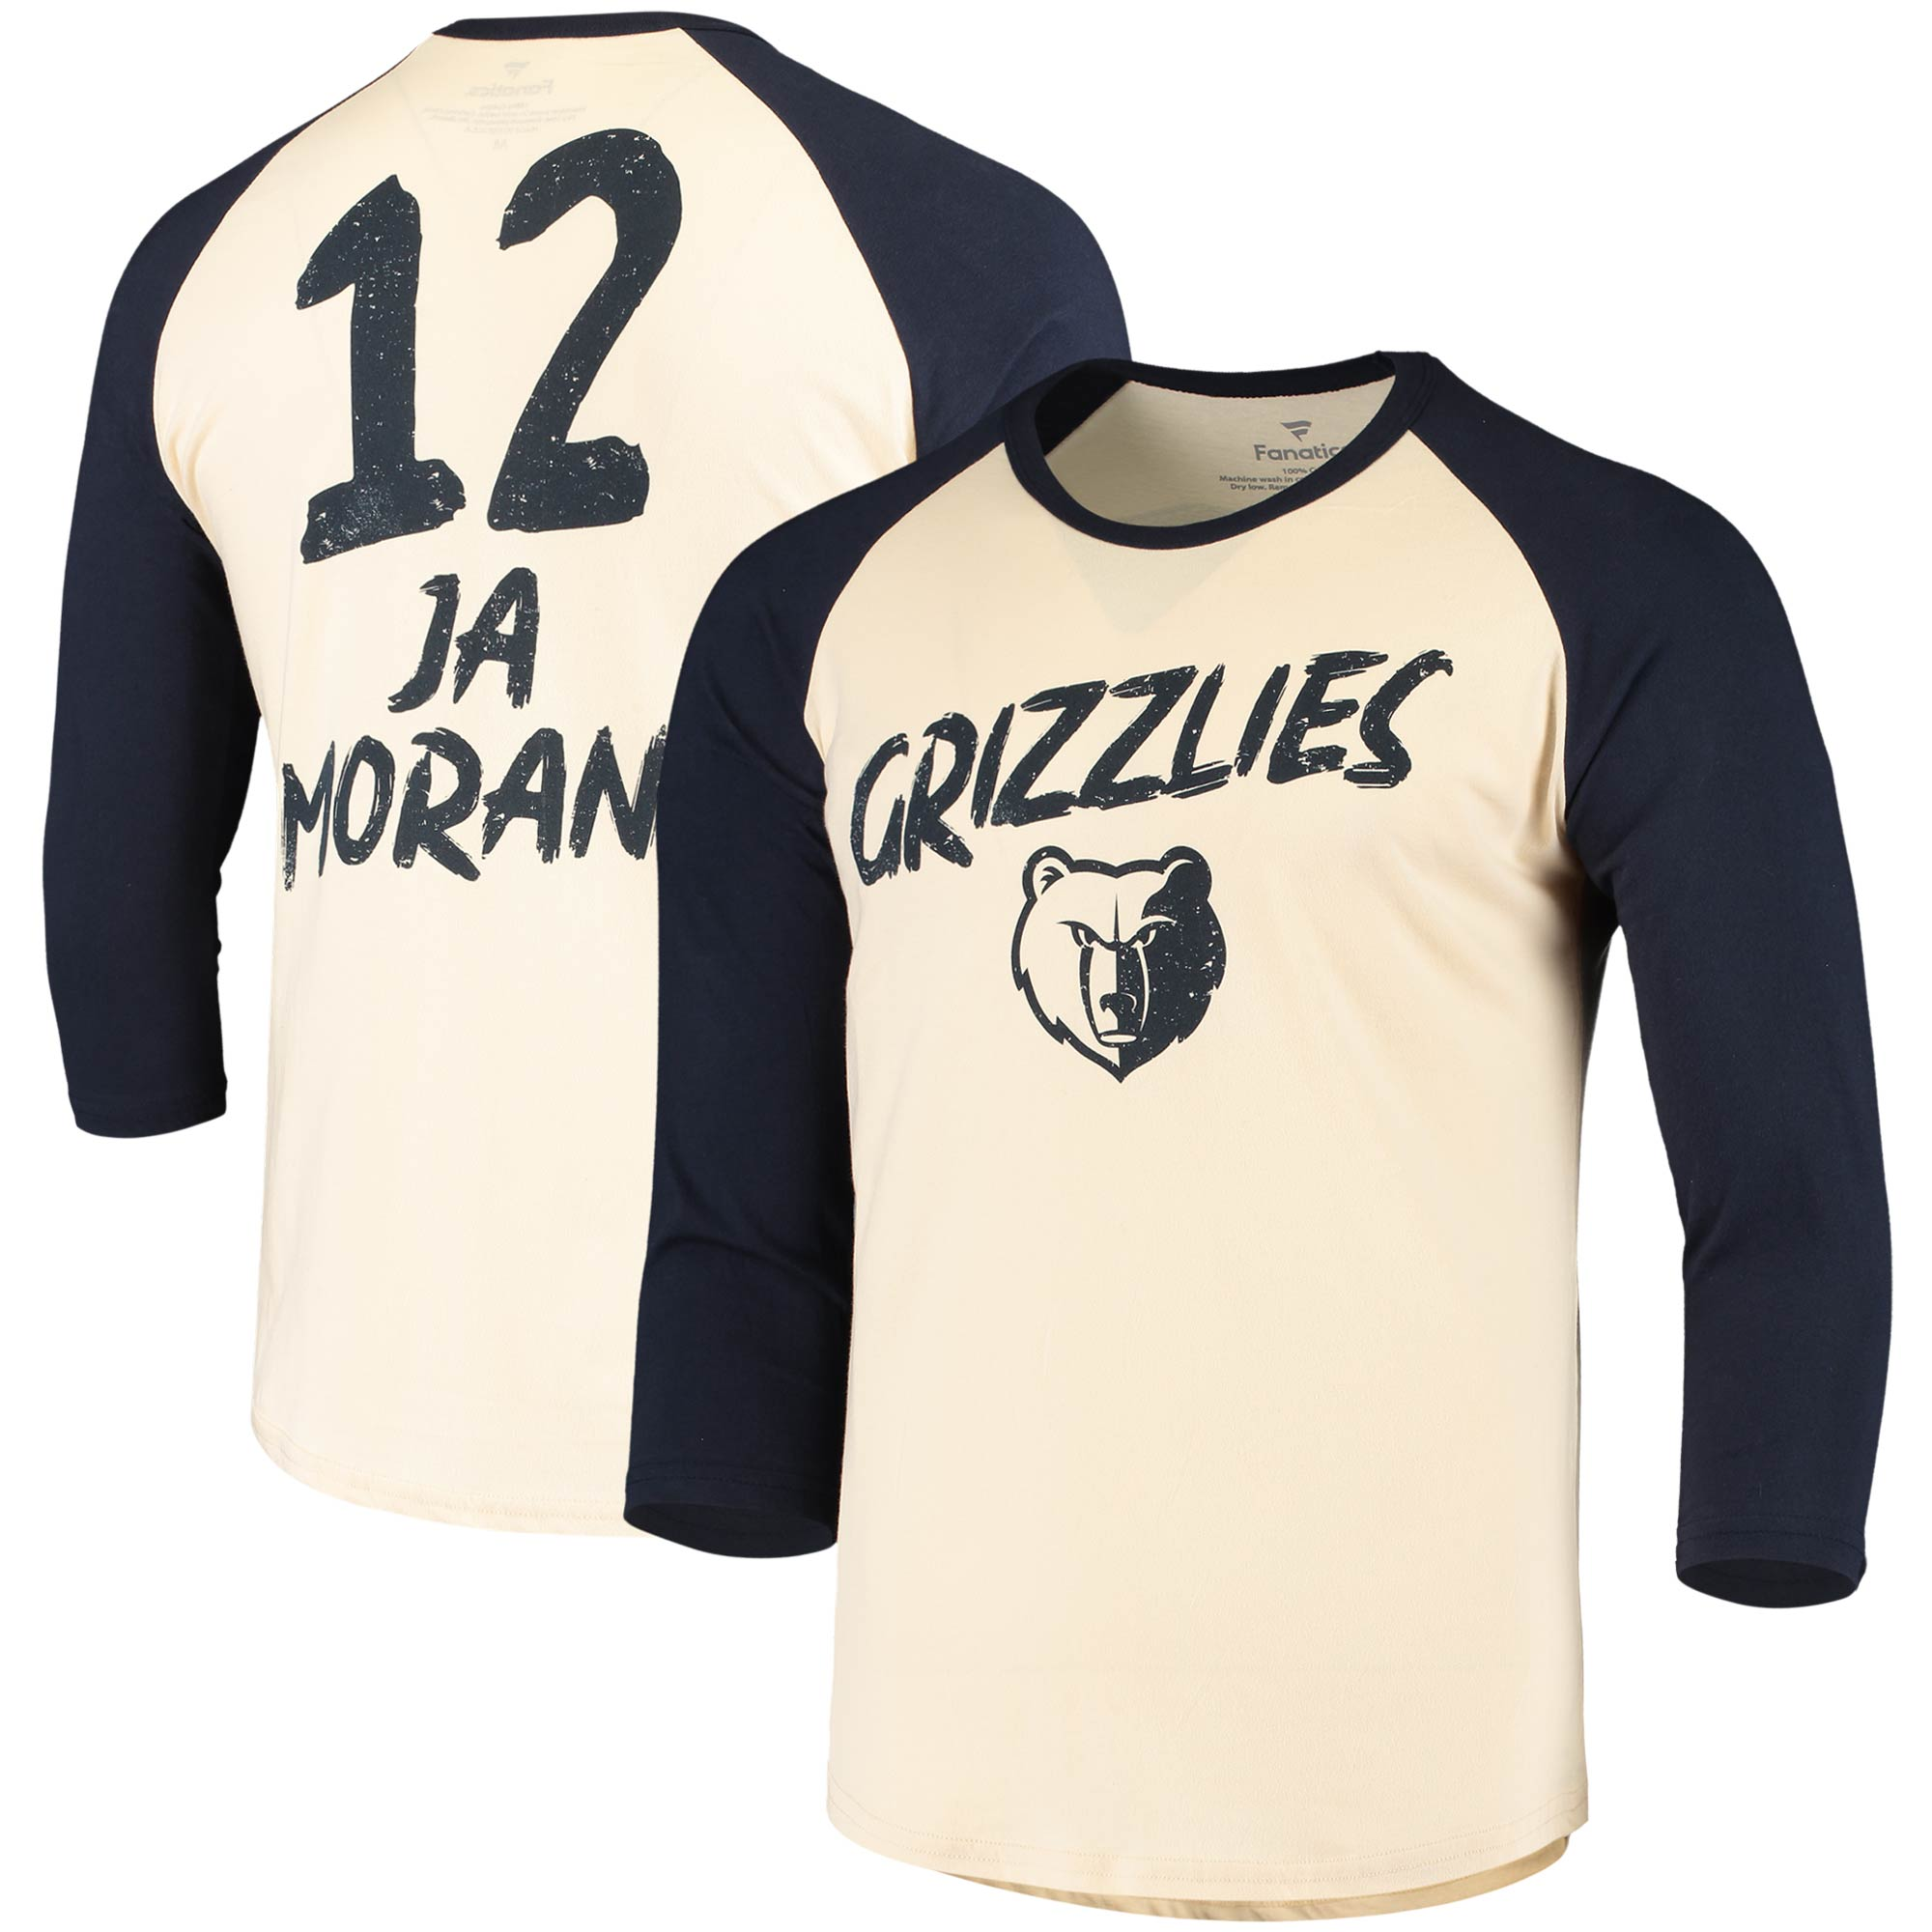 Ja Morant Memphis Grizzlies Fanatics Branded Raglan 3/4 Sleeve T-Shirt - Cream/Navy